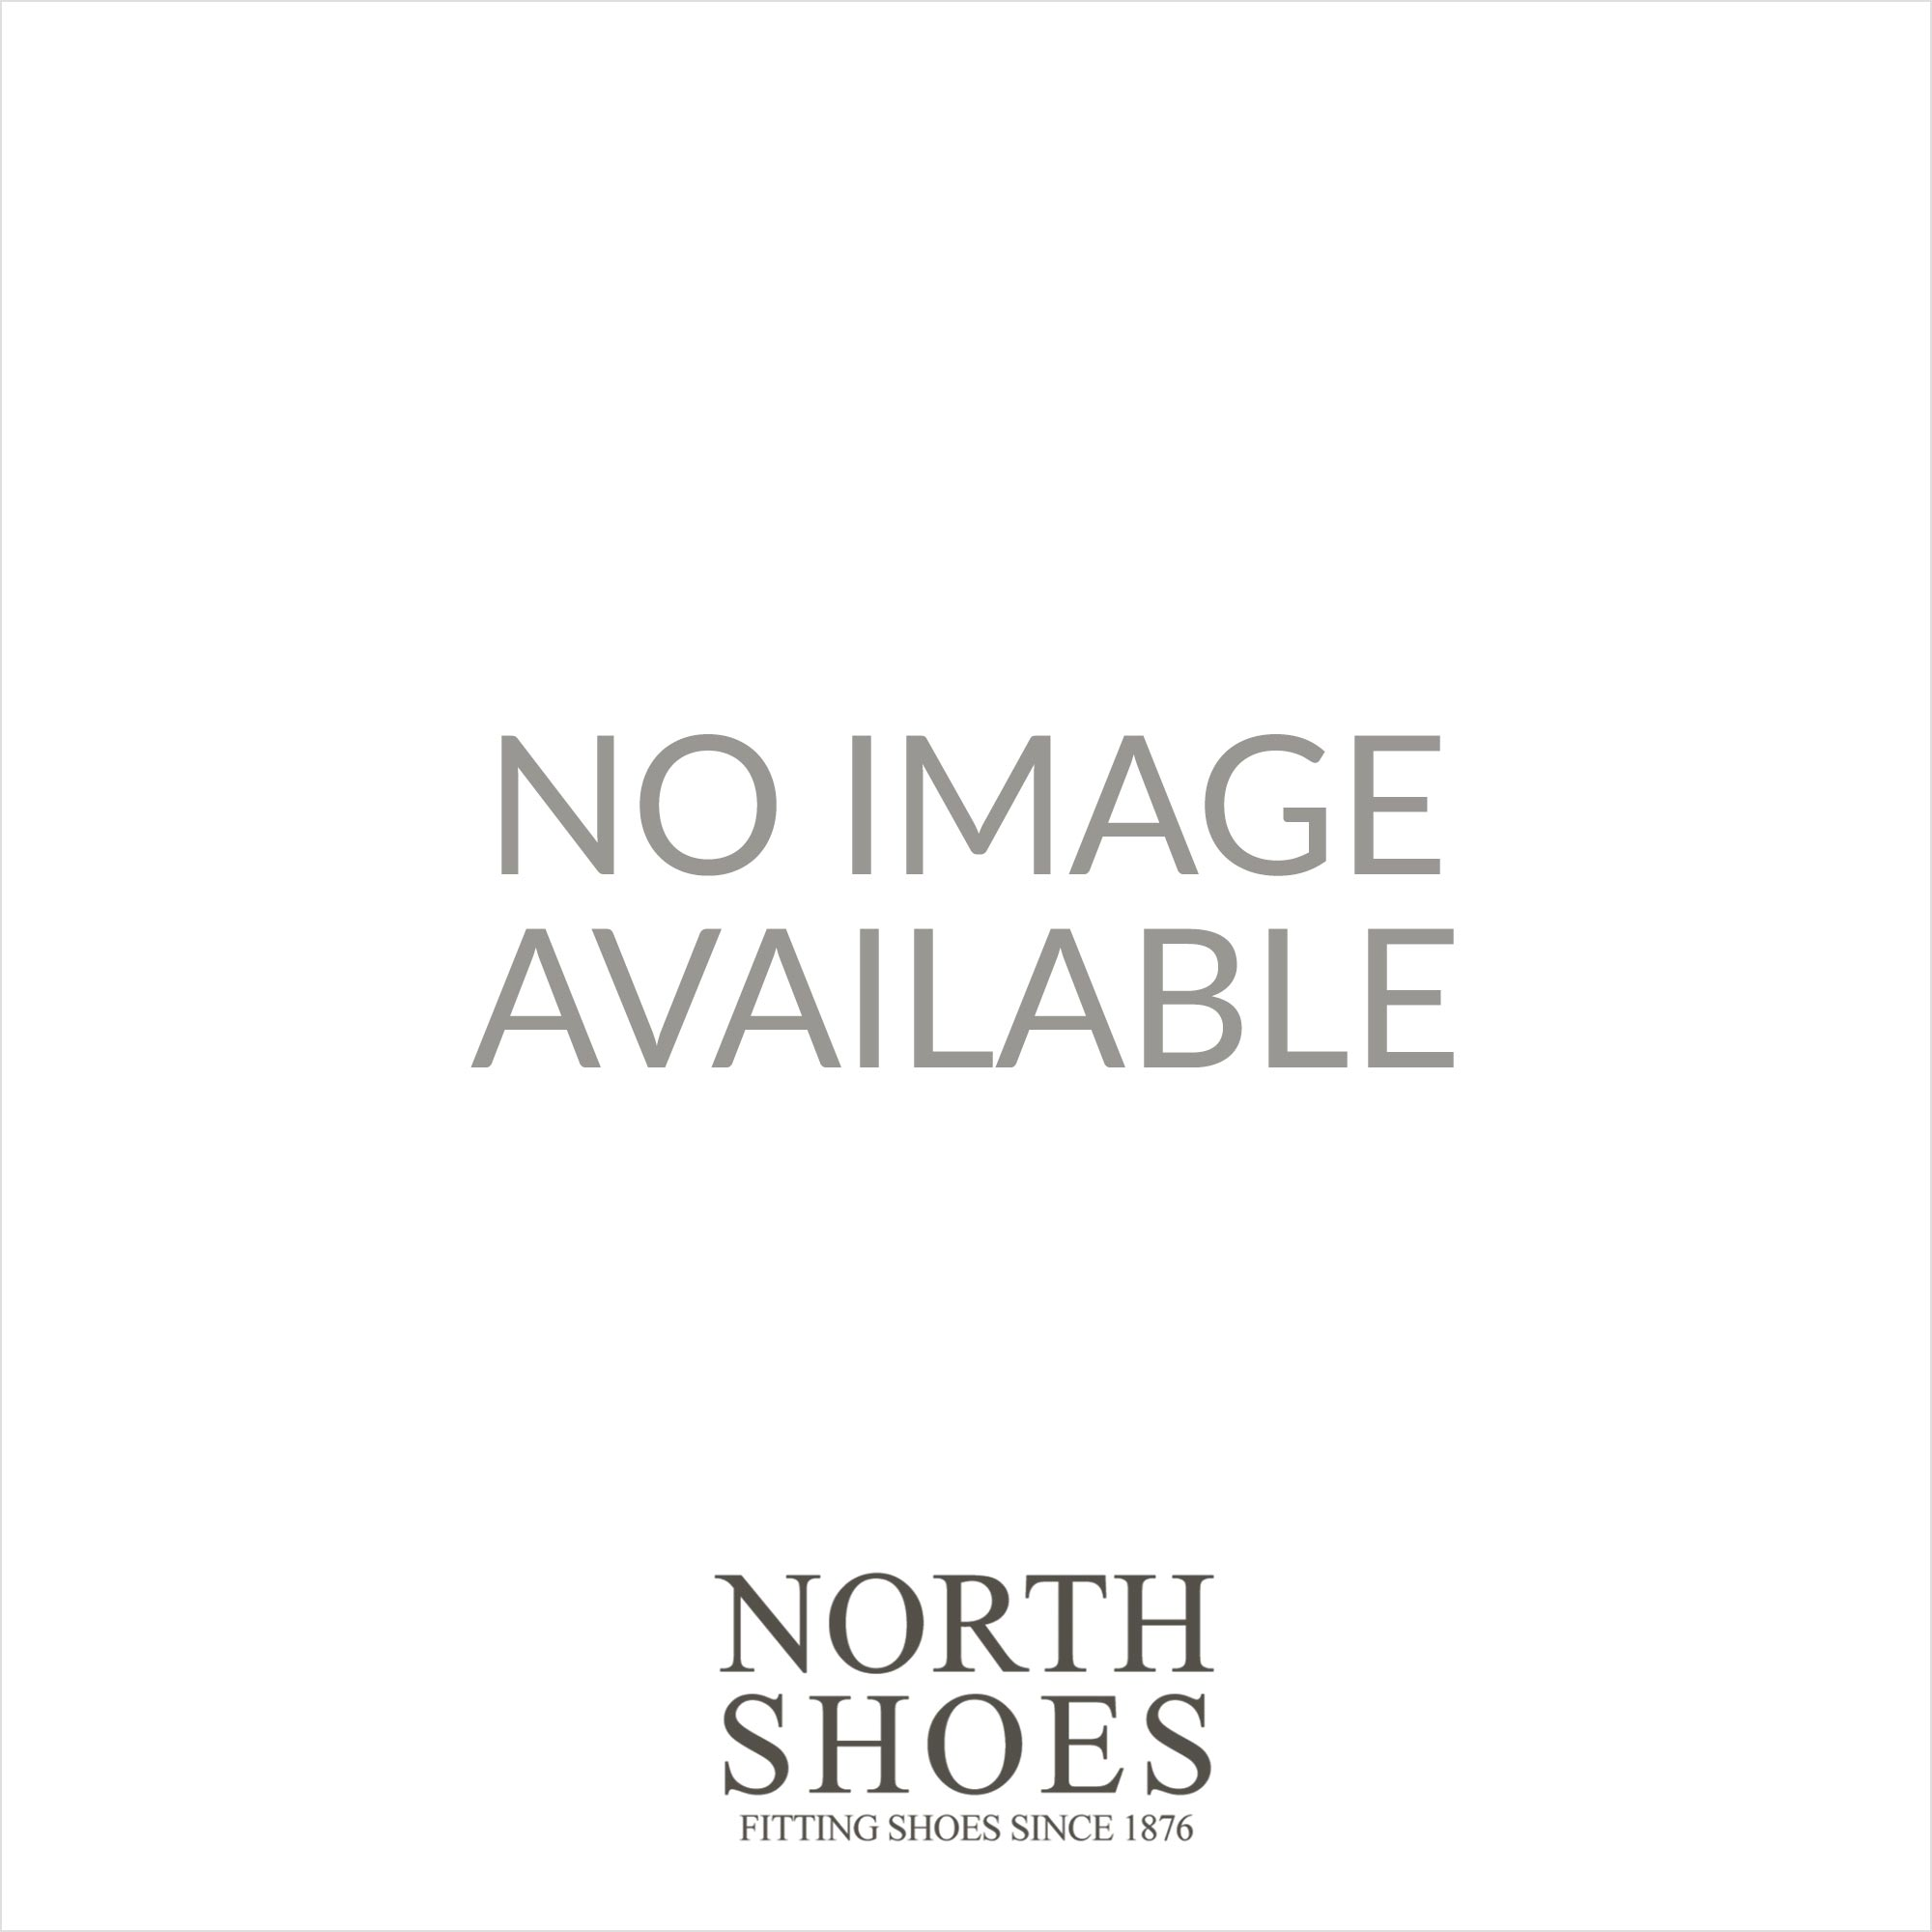 b2e7bab66e86 Converse Chuck Taylor All Star Classic 3J236 Red Canvas Unisex Lace Up  Sneaker Shoe - Converse from North Shoes UK